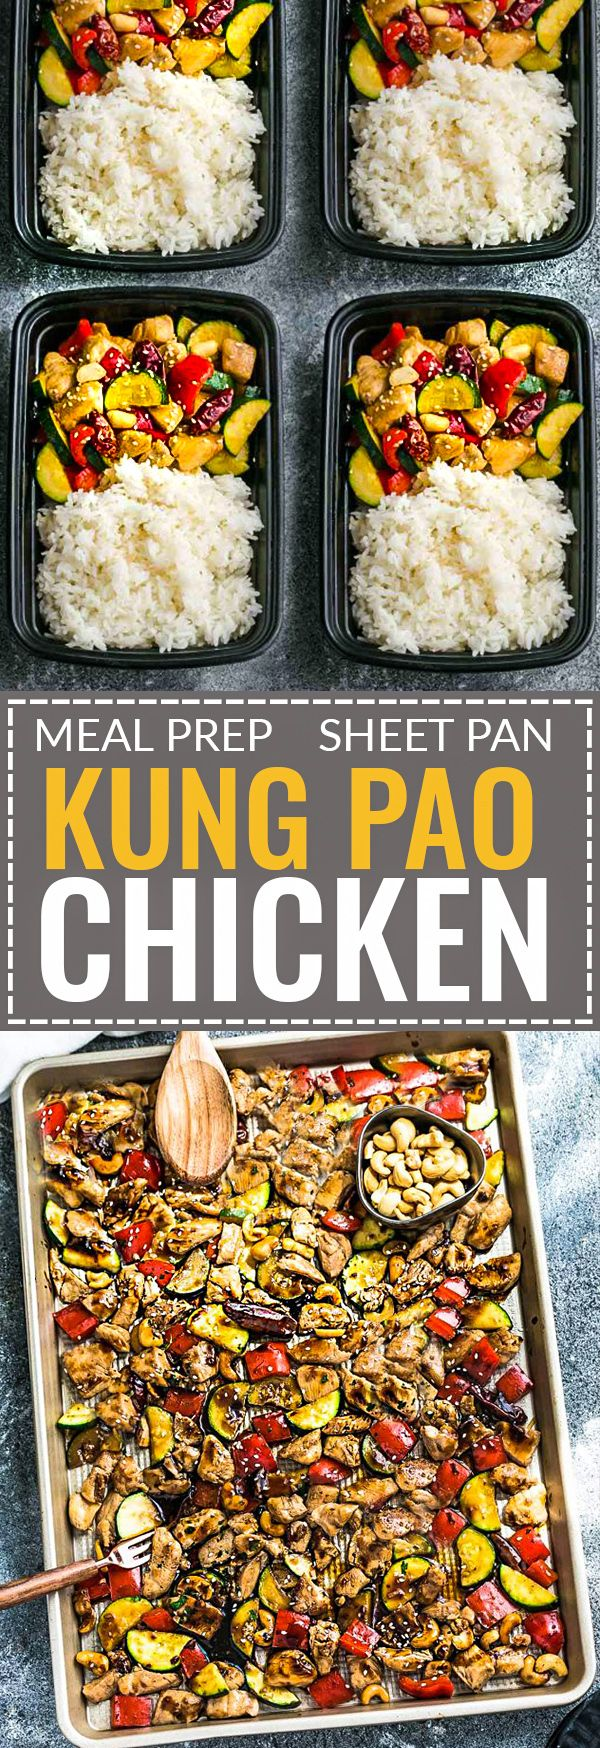 Sheet Pan Kung Pao Chicken Meal Prep Lunch Bowls is an easy all in one meal with all the flavors of the popular Chinese restaurant takeout dish. Best of all, it's perfect for busy weeknights and simple to customize with paleo friendly options and leftovers are delicious for work or school lunch bowls and lunchboxes or Sunday meal prep.